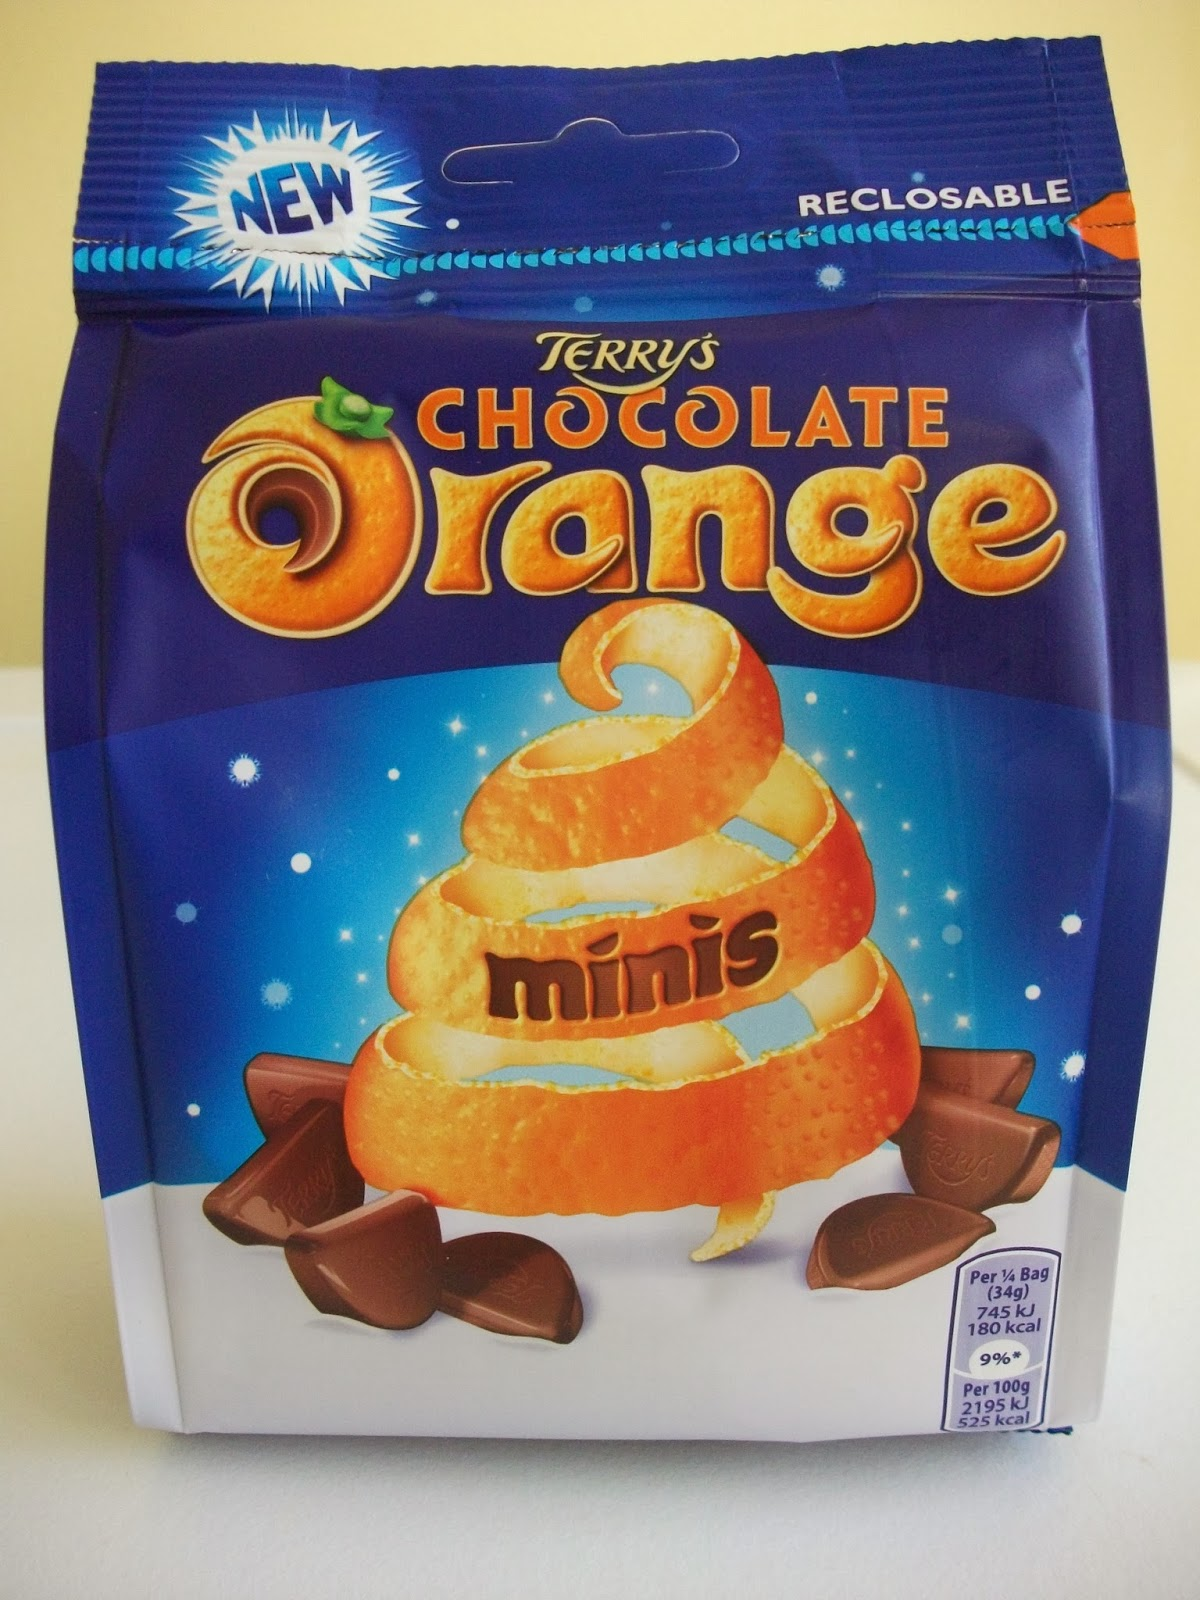 Kev's Snack Reviews: Terry's Chocolate Orange Minis Review (plus ...